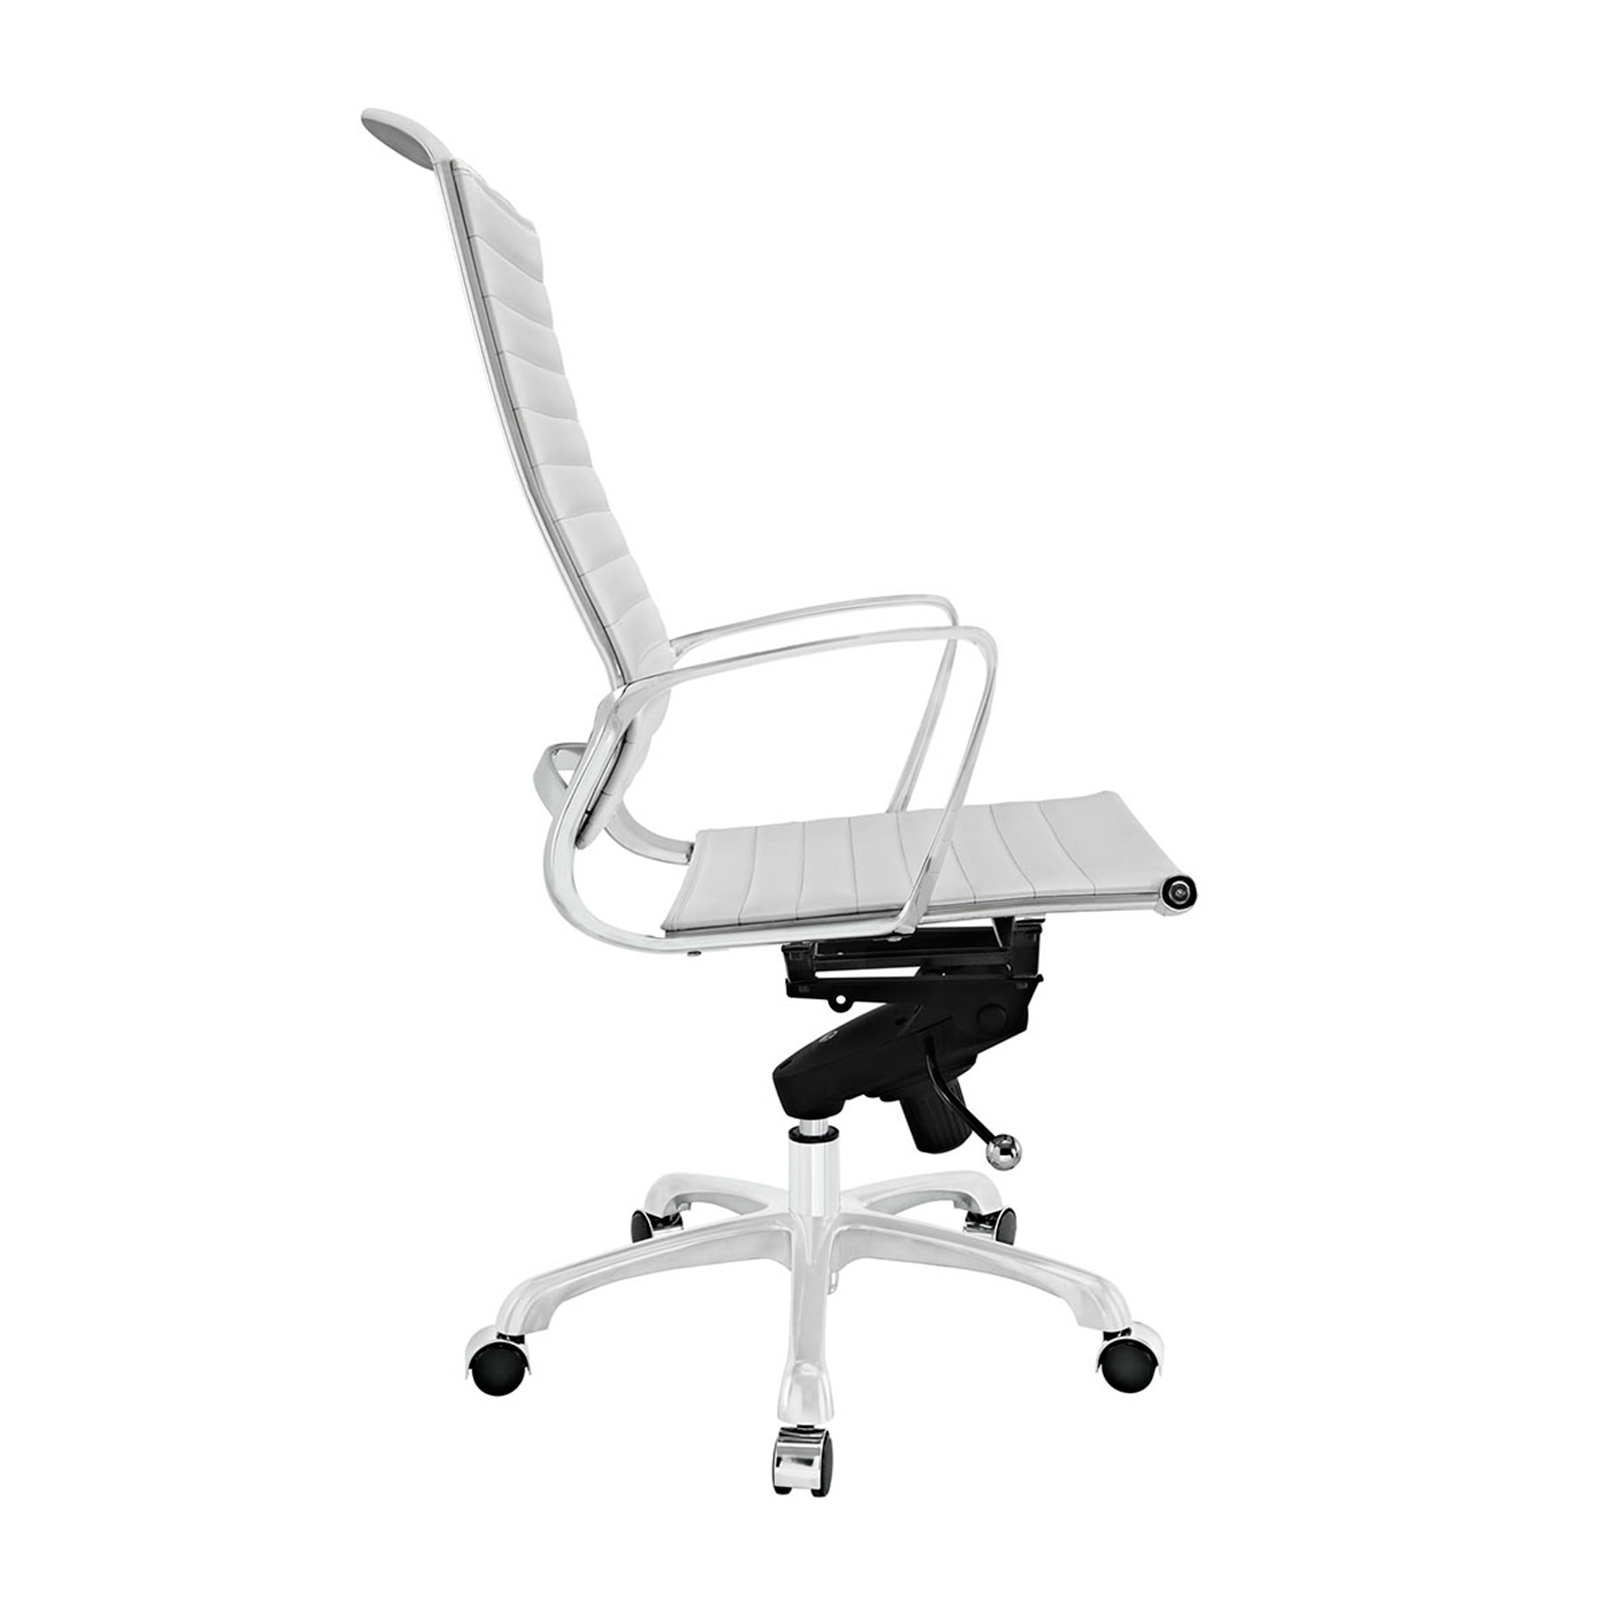 ergonomic chair rental increase office height rentals commercial staging